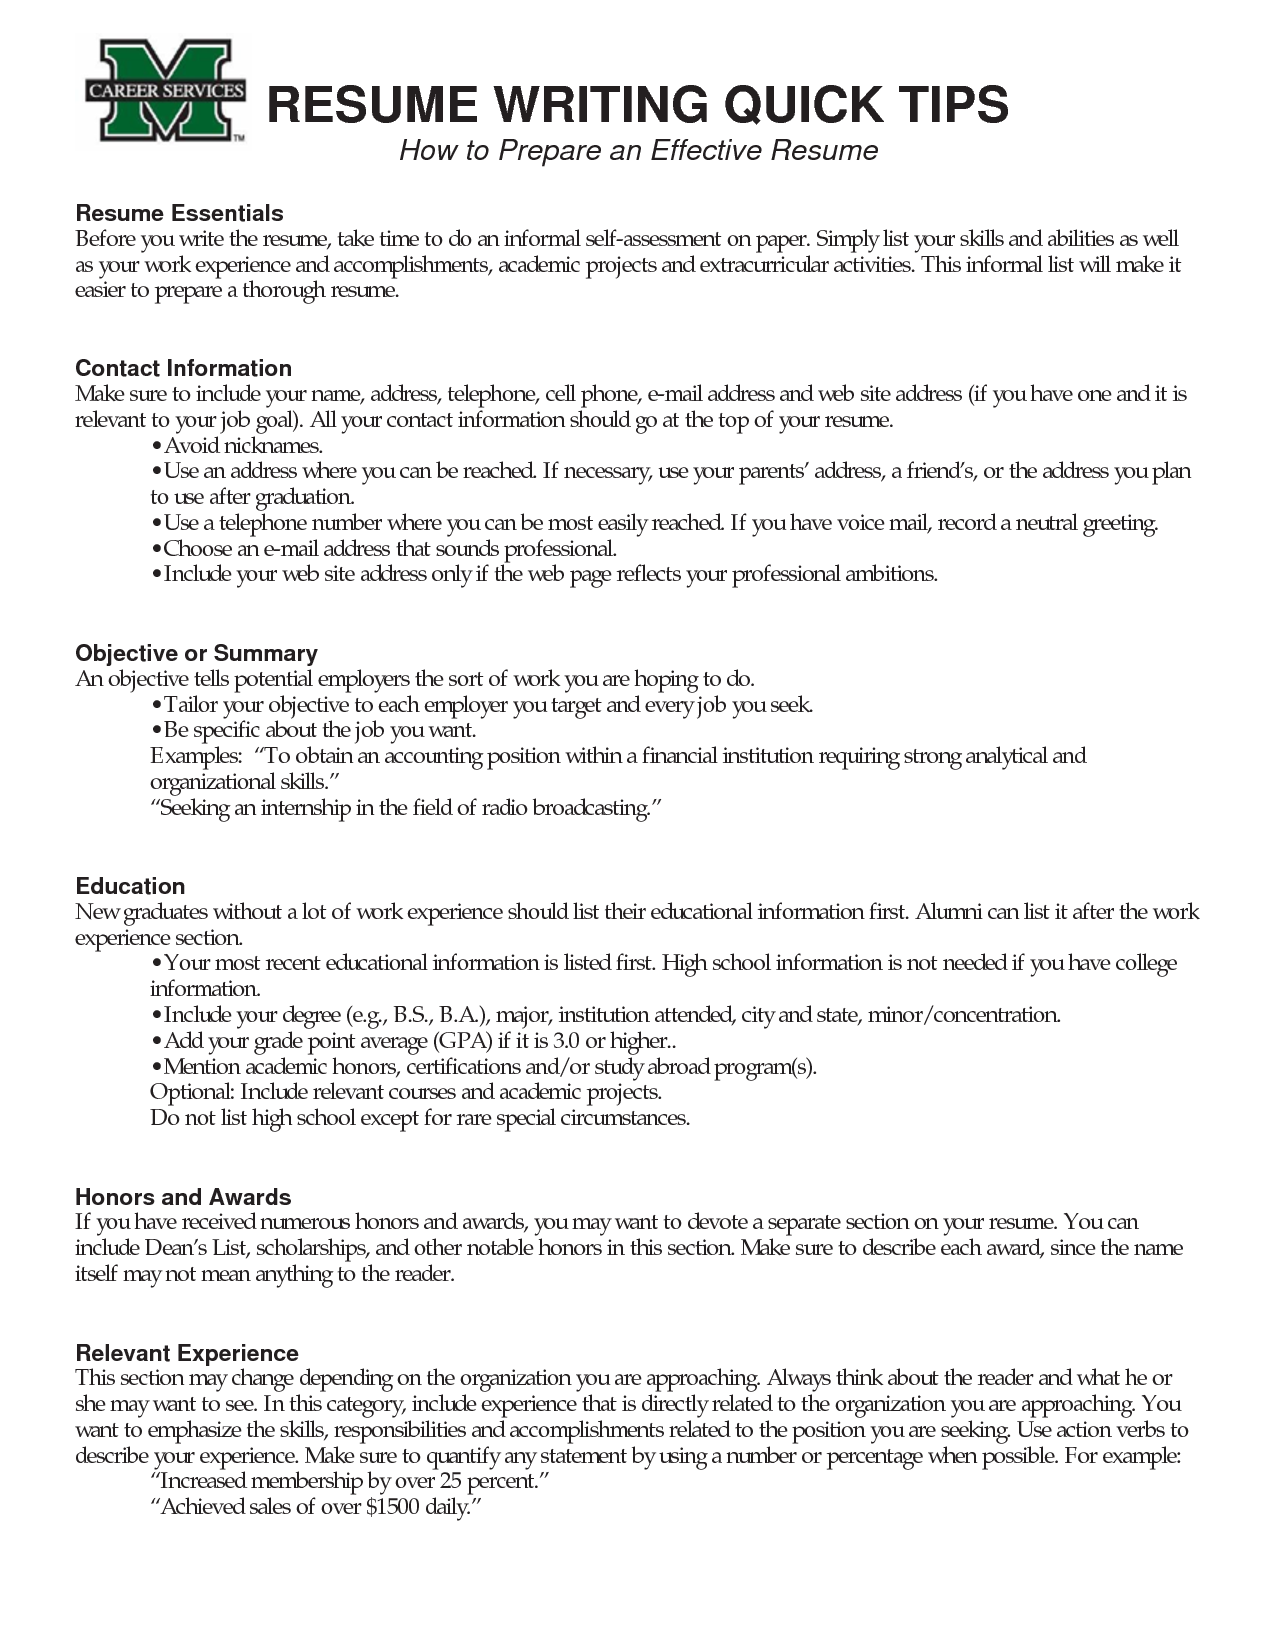 extra curricular activities examples for job application